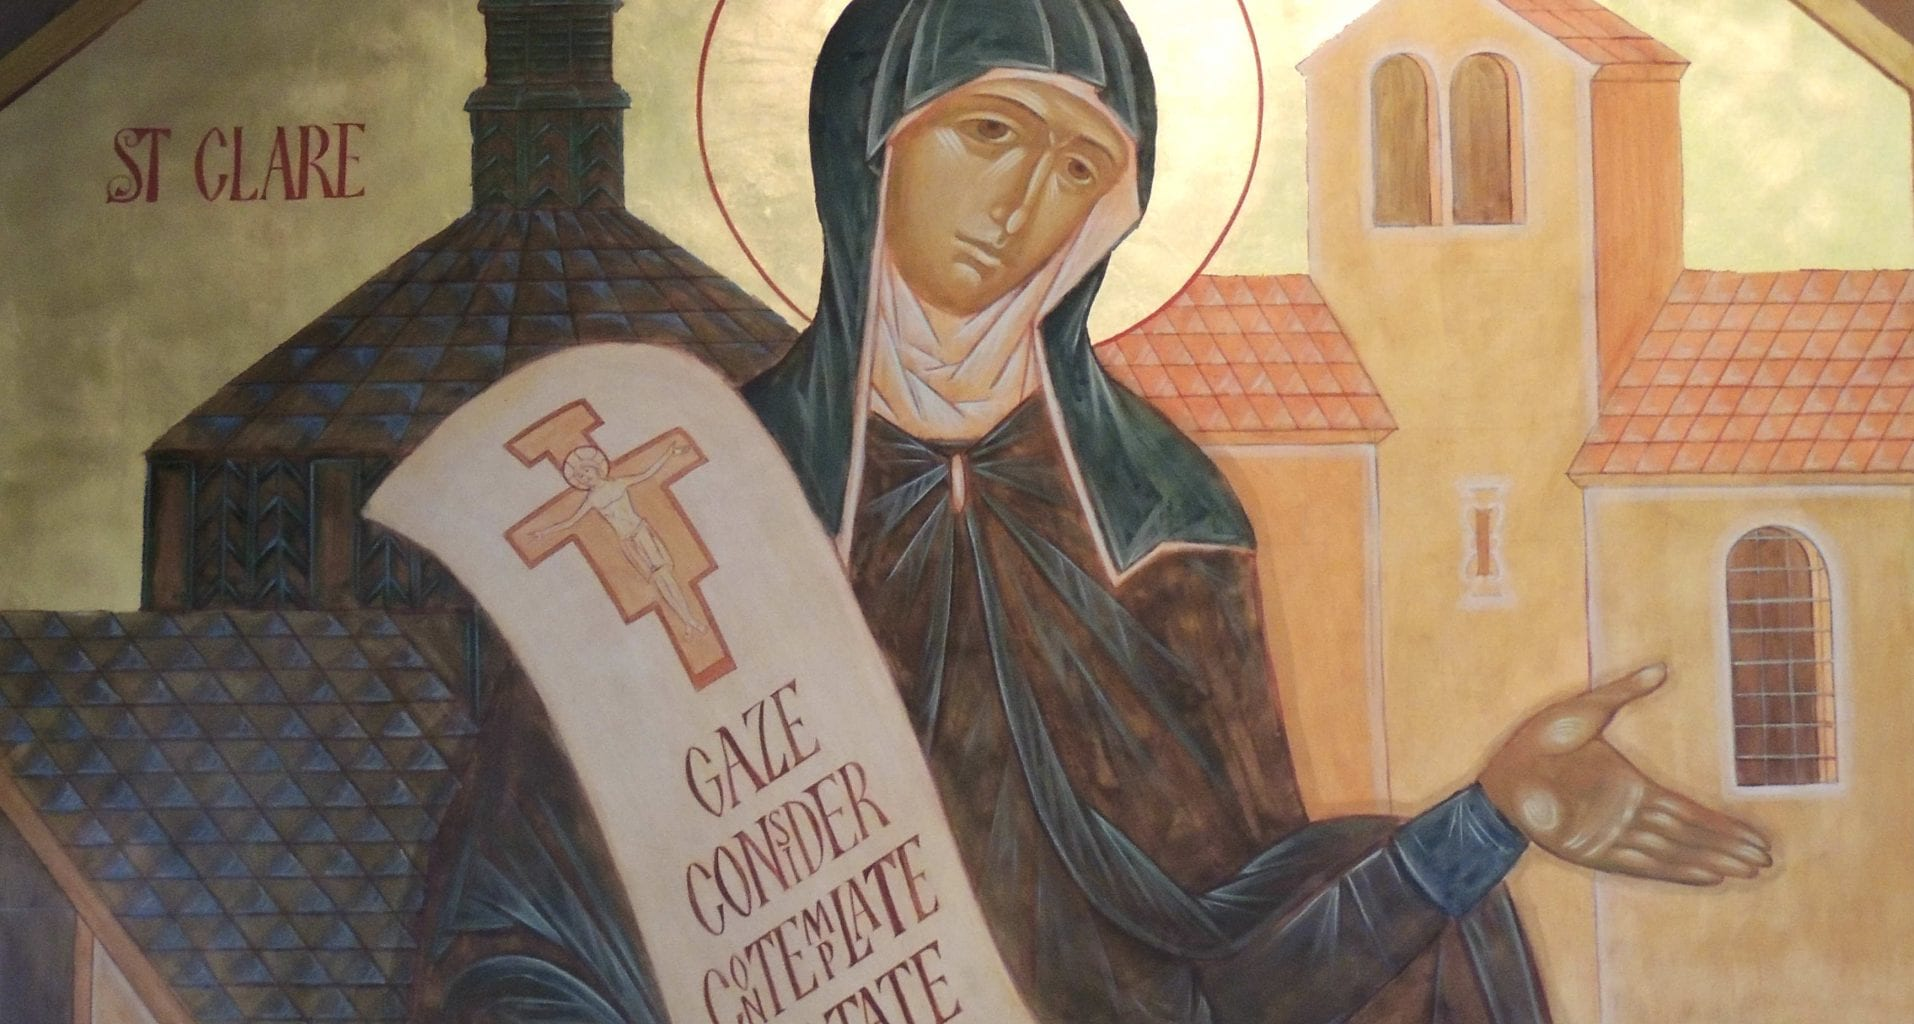 SSF and CSF Celebrate the Feast of Saint Clare